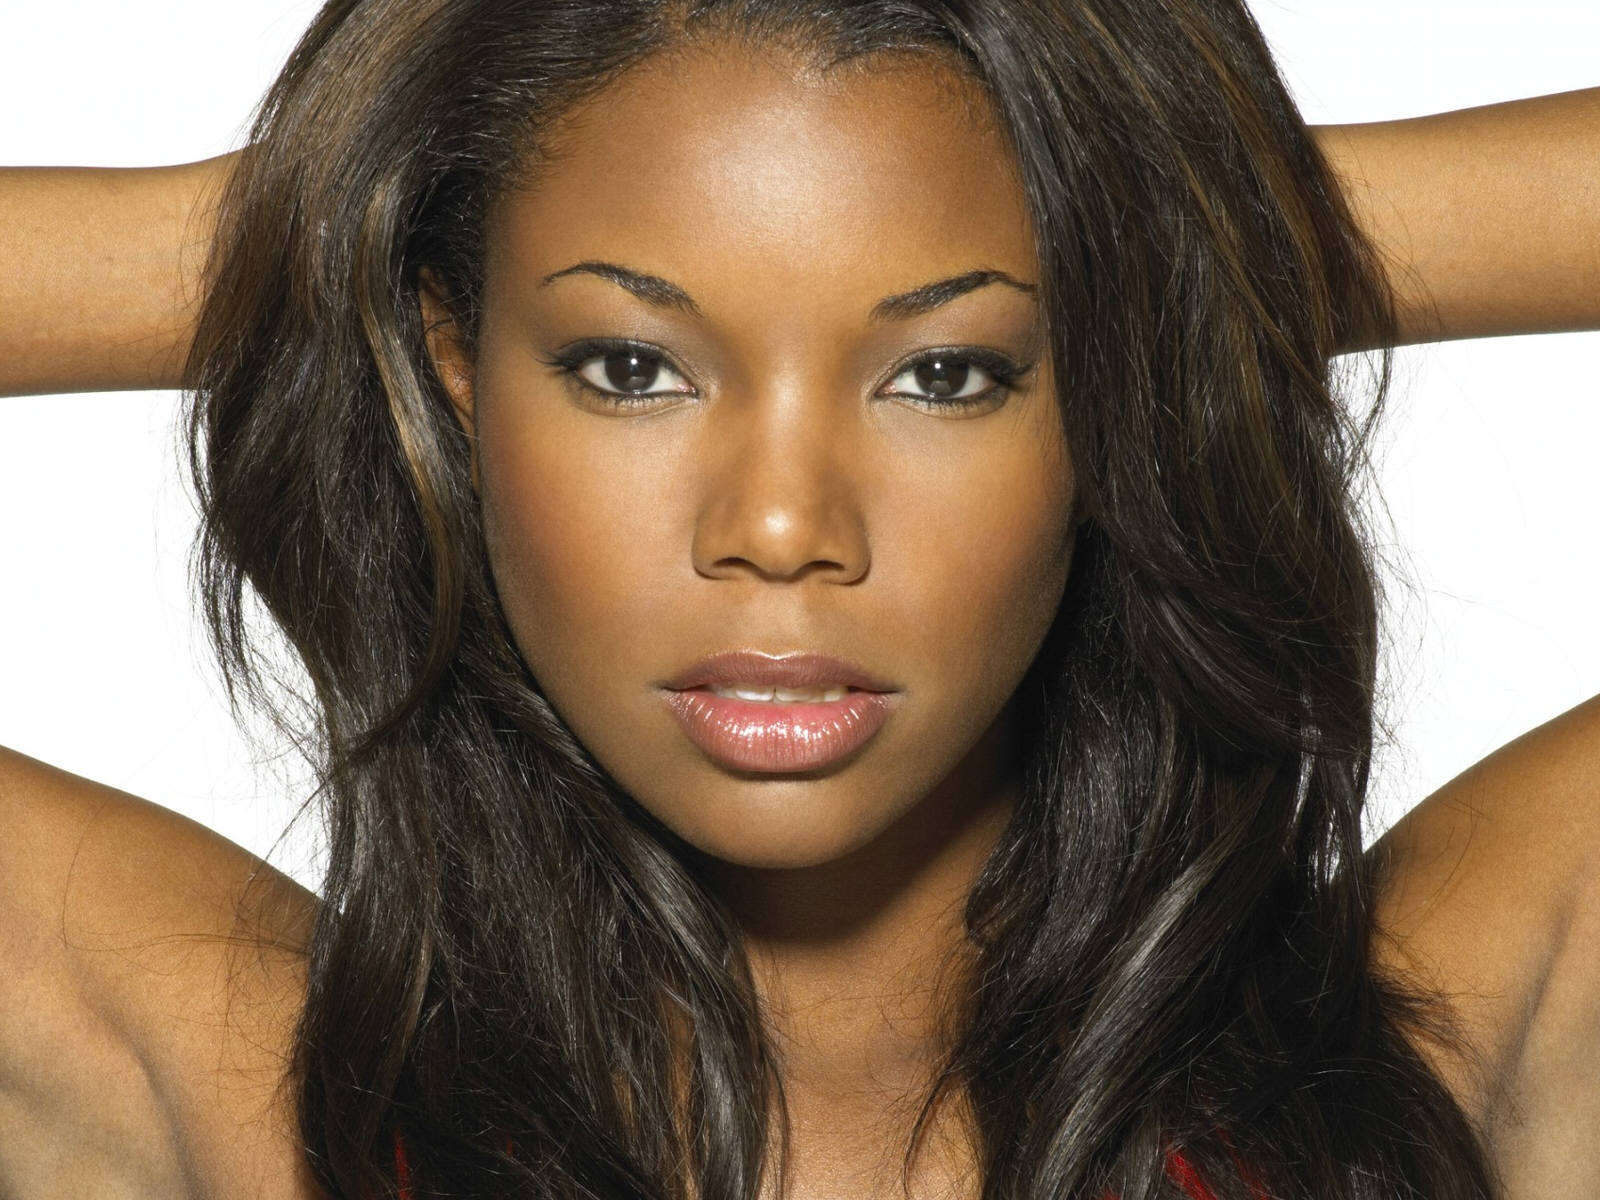 HQ Gabrielle Union Wallpapers | File 260.9Kb